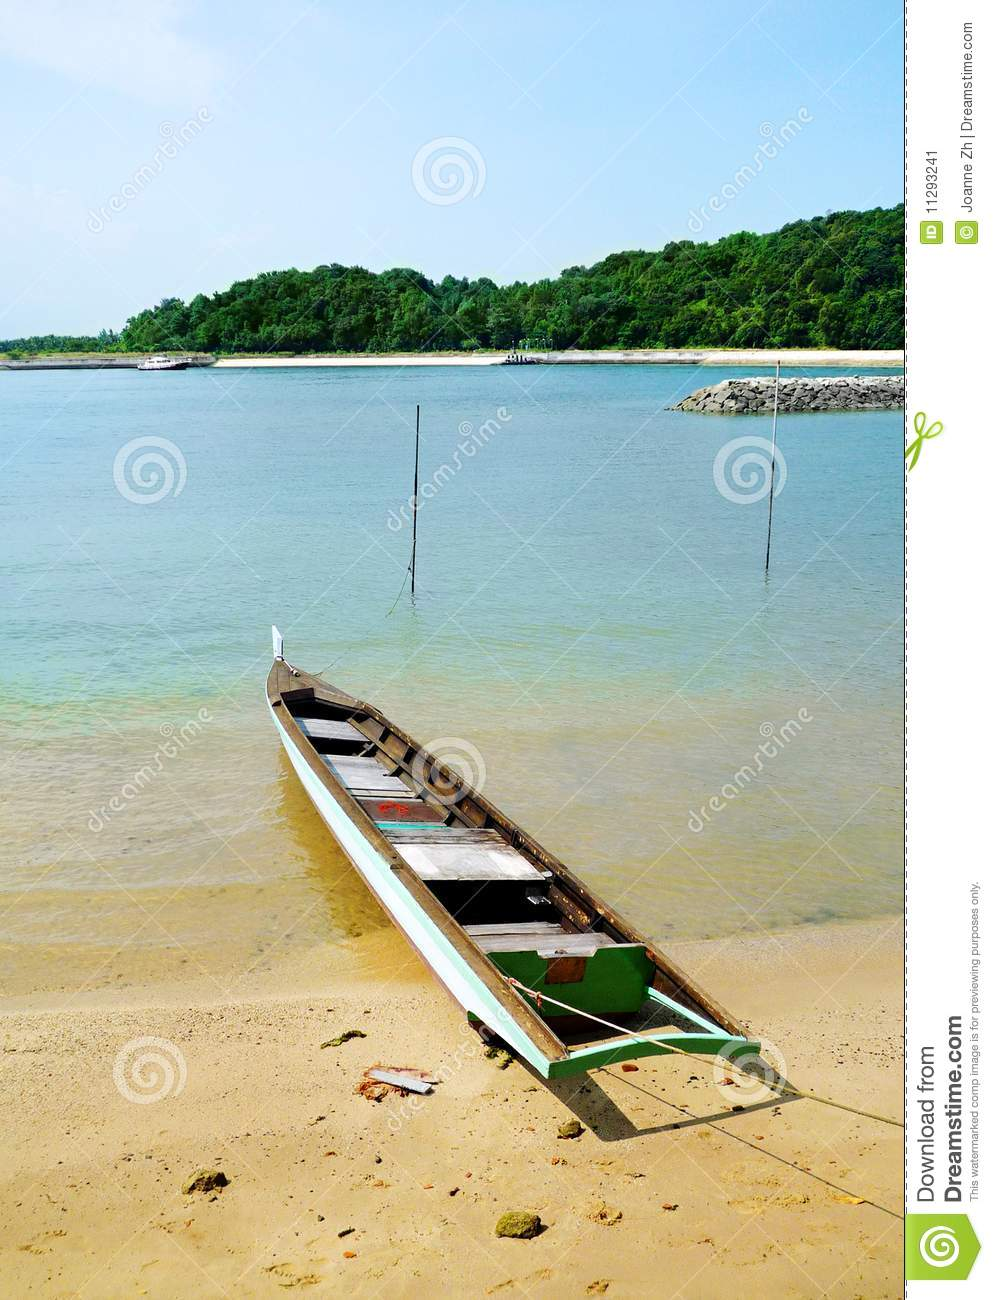 Download Fishing Boat On Tropical Island Beach Stock Image Image Of Seasides Nature